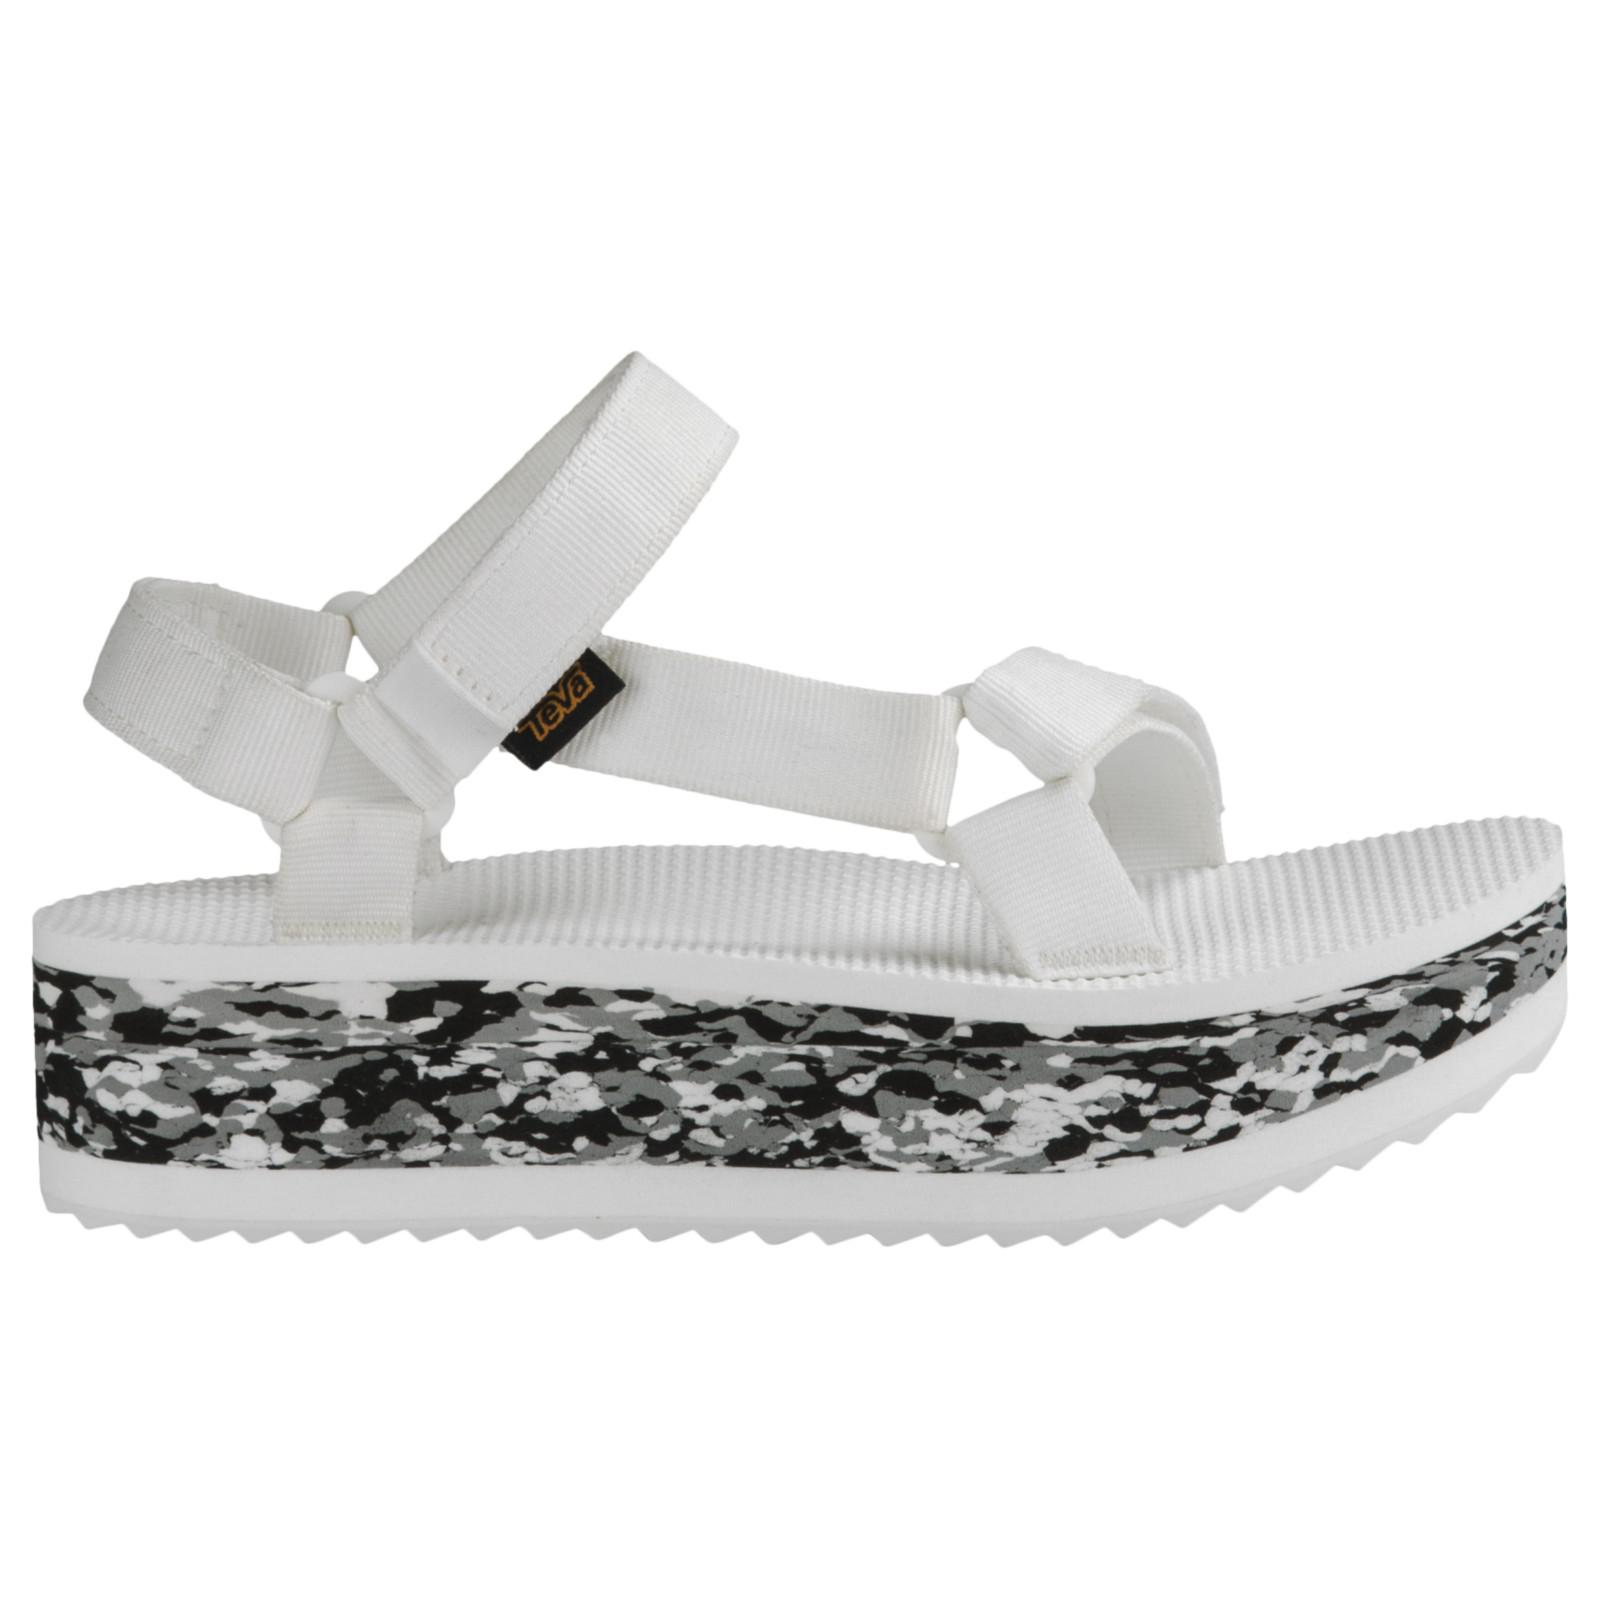 b04f437b7 Teva Flatform Marble Women s Sandals in White - Lyst